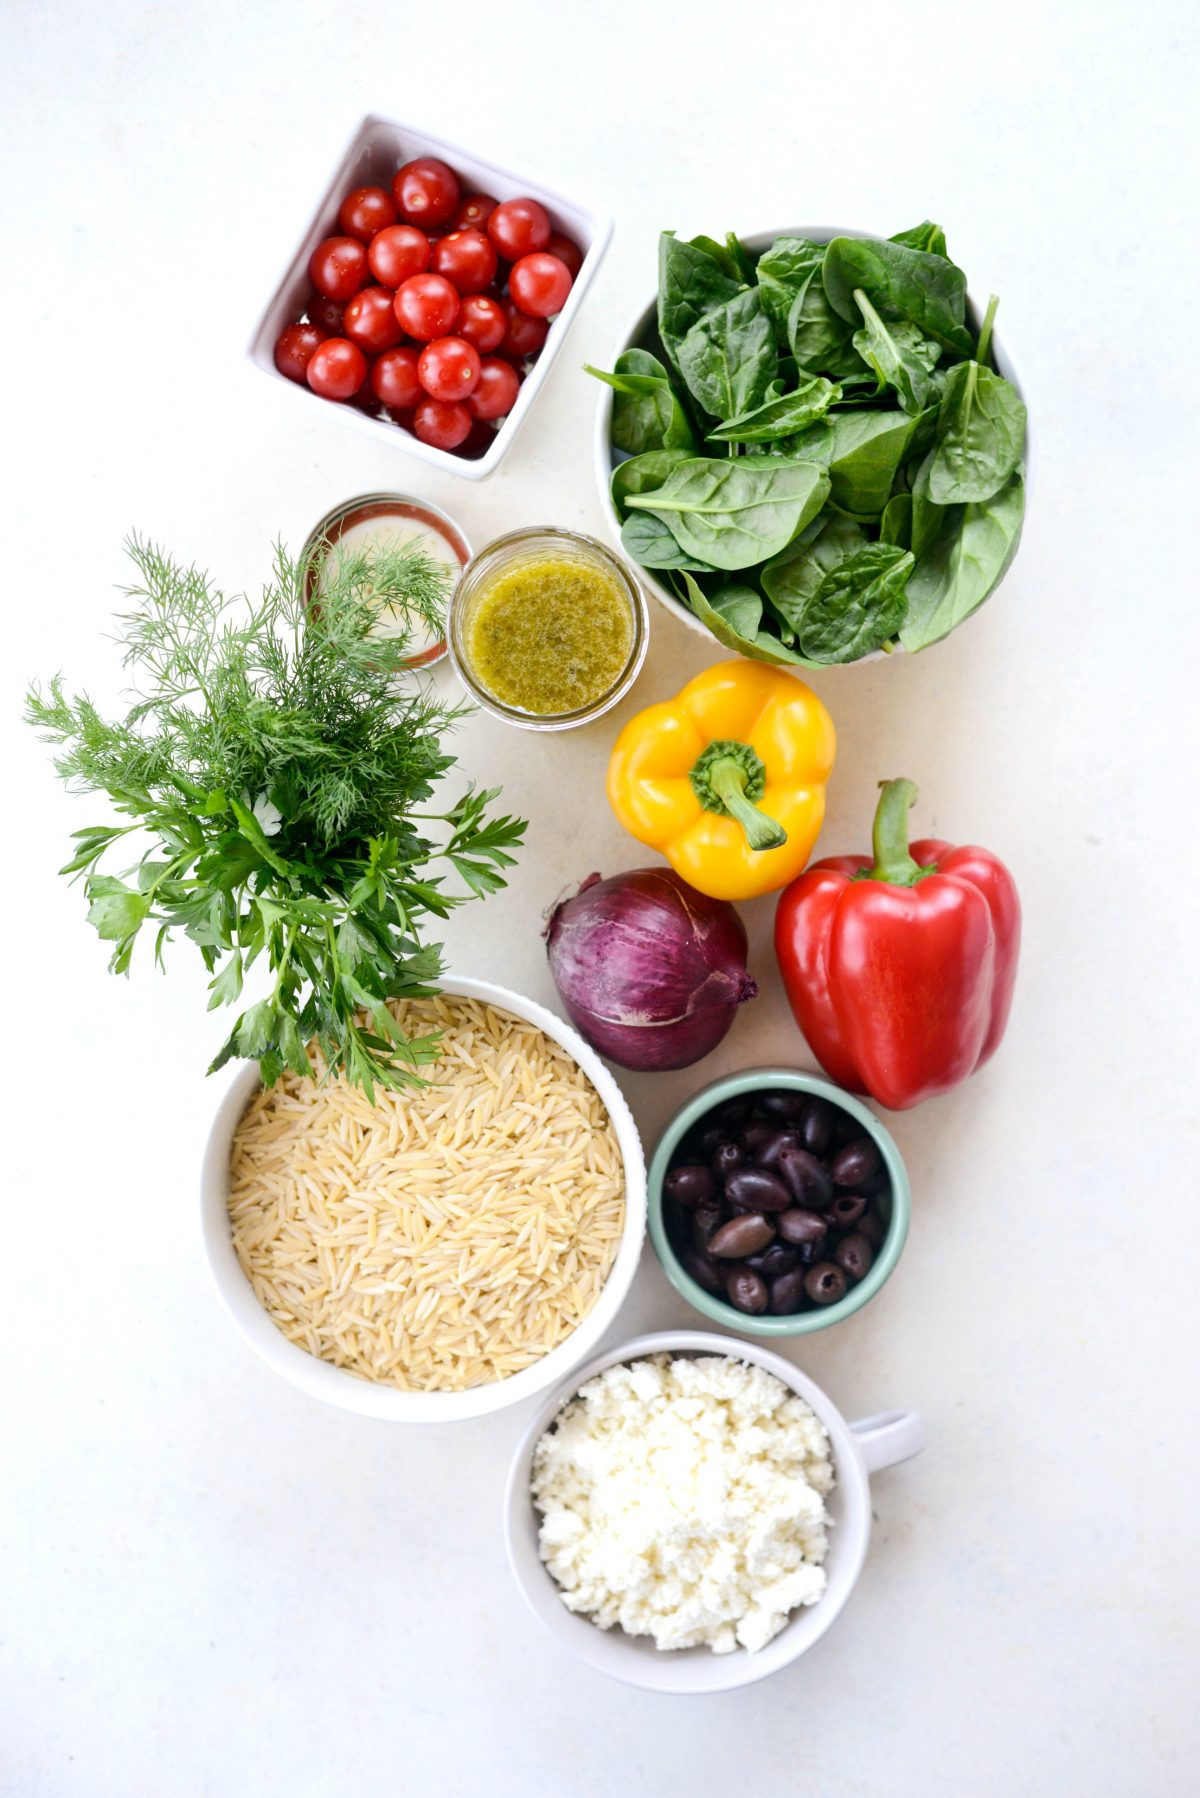 Greek Orzo Salad Ingredients l SimplyScratch.com #greek #orzo #pasta #salad #spinach #feta #picnic